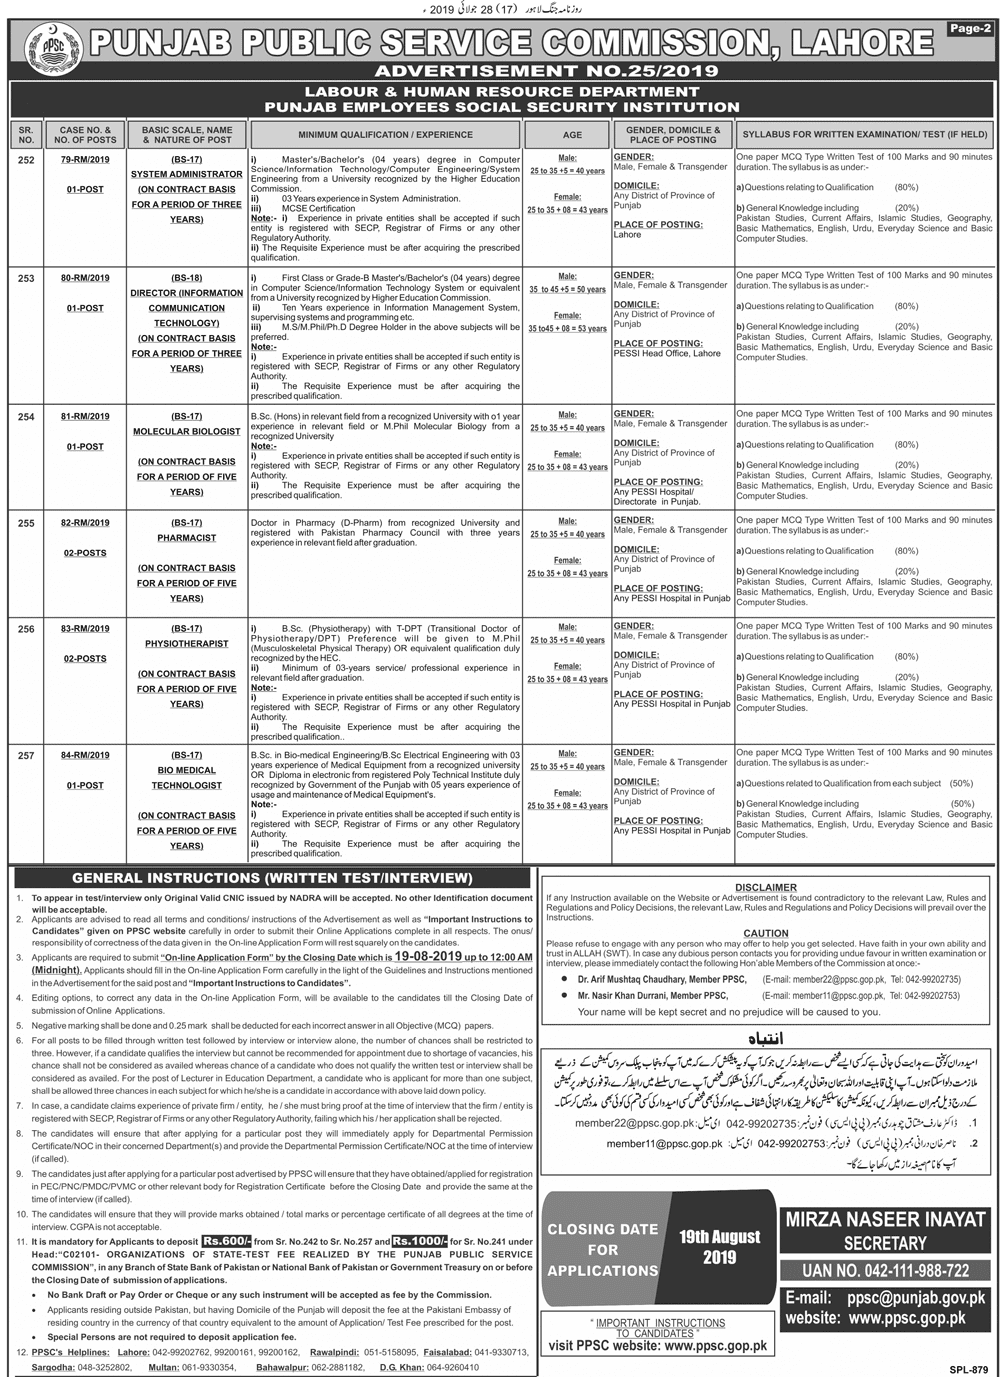 PPSC Advertisement 25/2019 Page No. 2/2